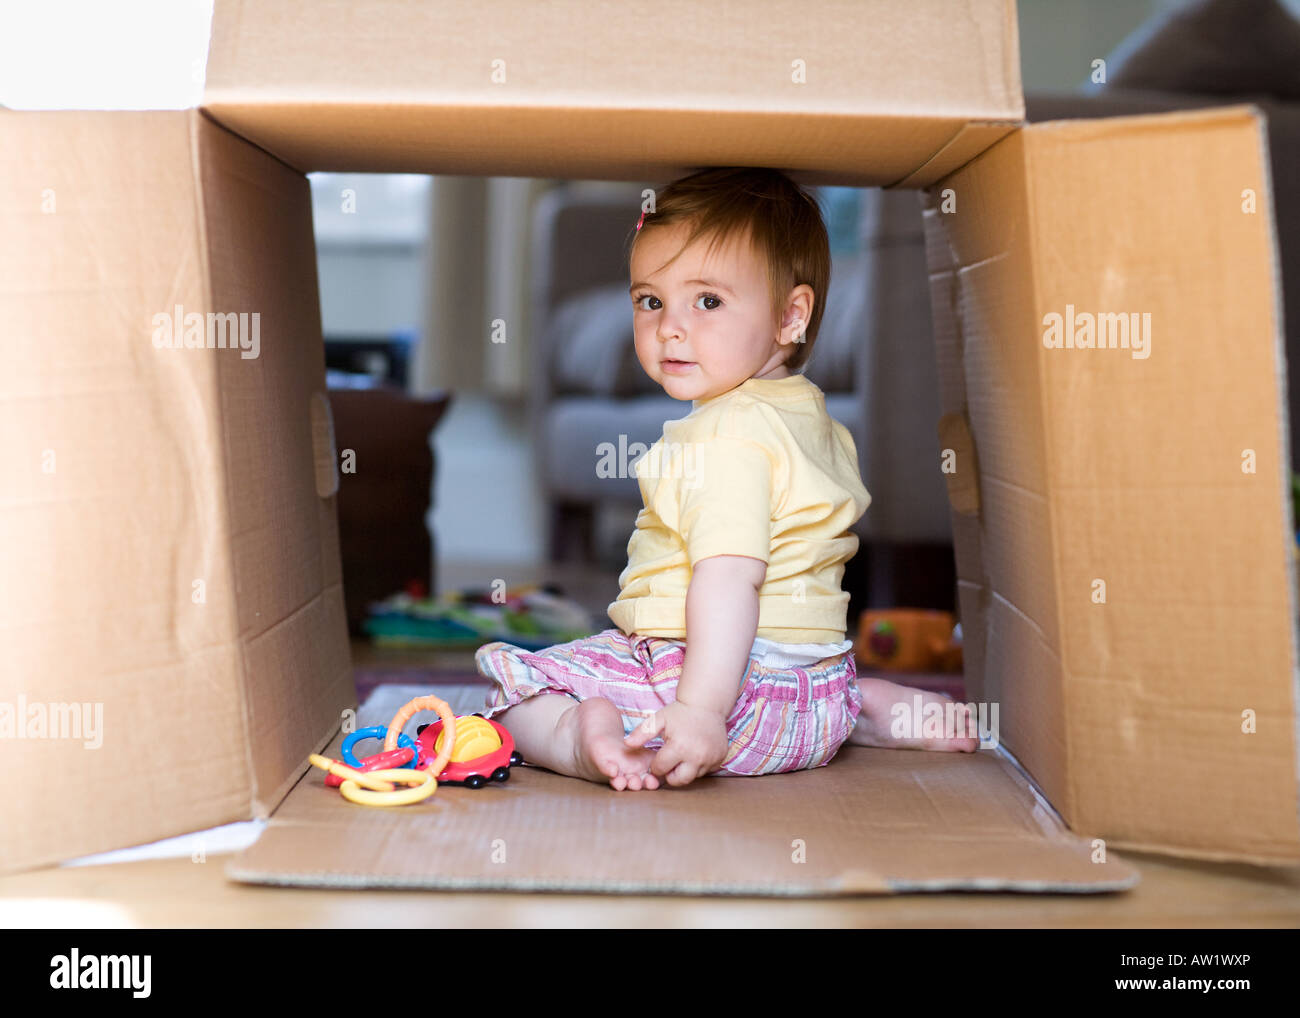 11 month old baby girl playing in a cardboard box - Stock Image